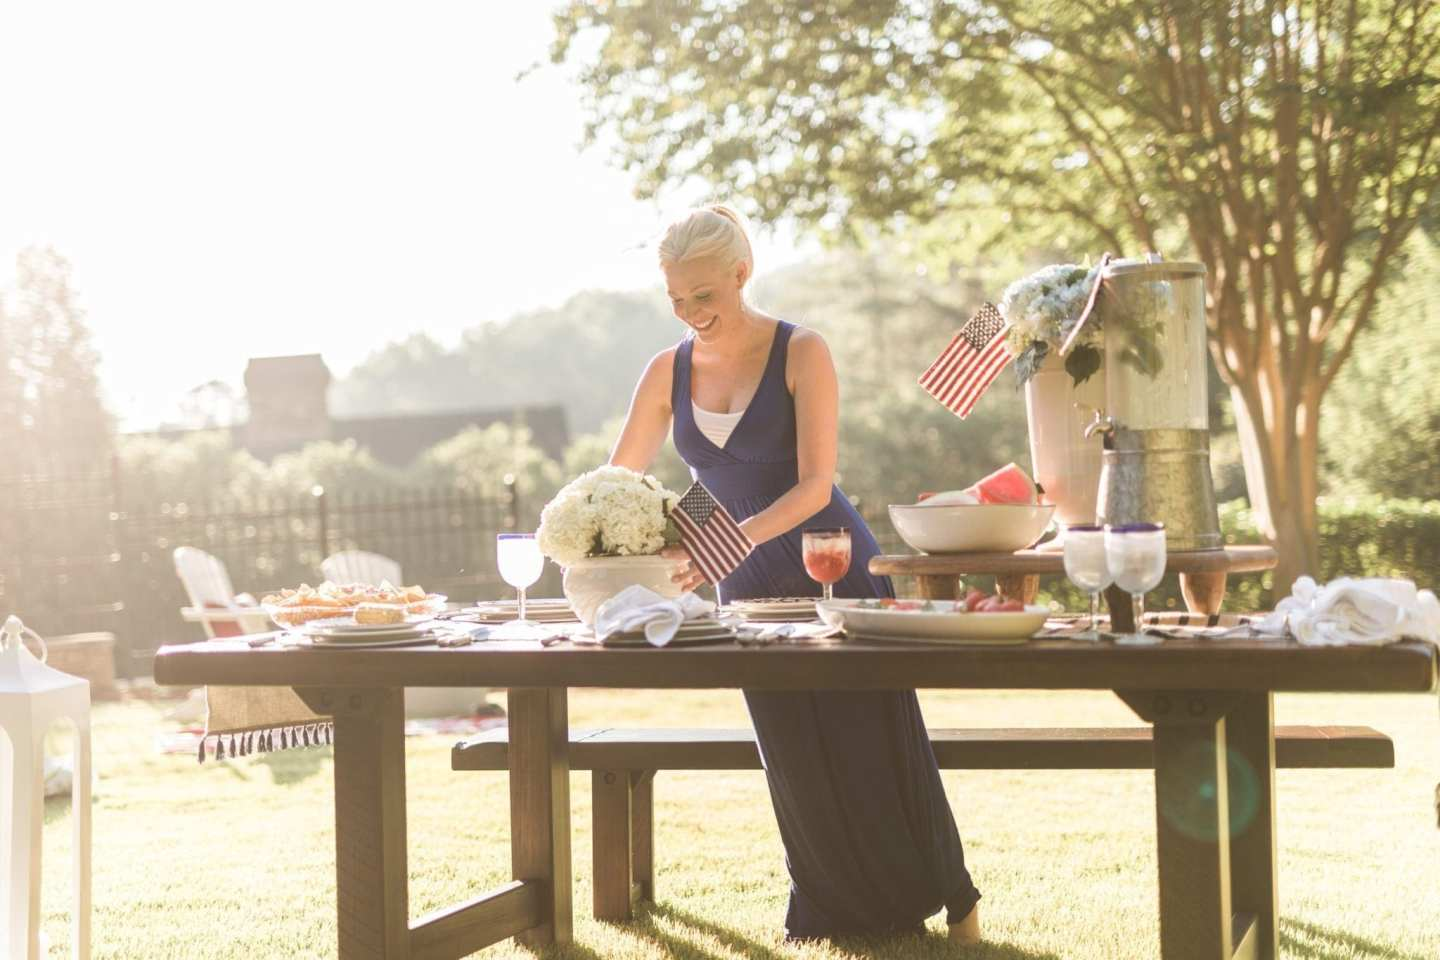 Get table centerpieces for party inspiration like this fourth of july decor with red white and blue table settings